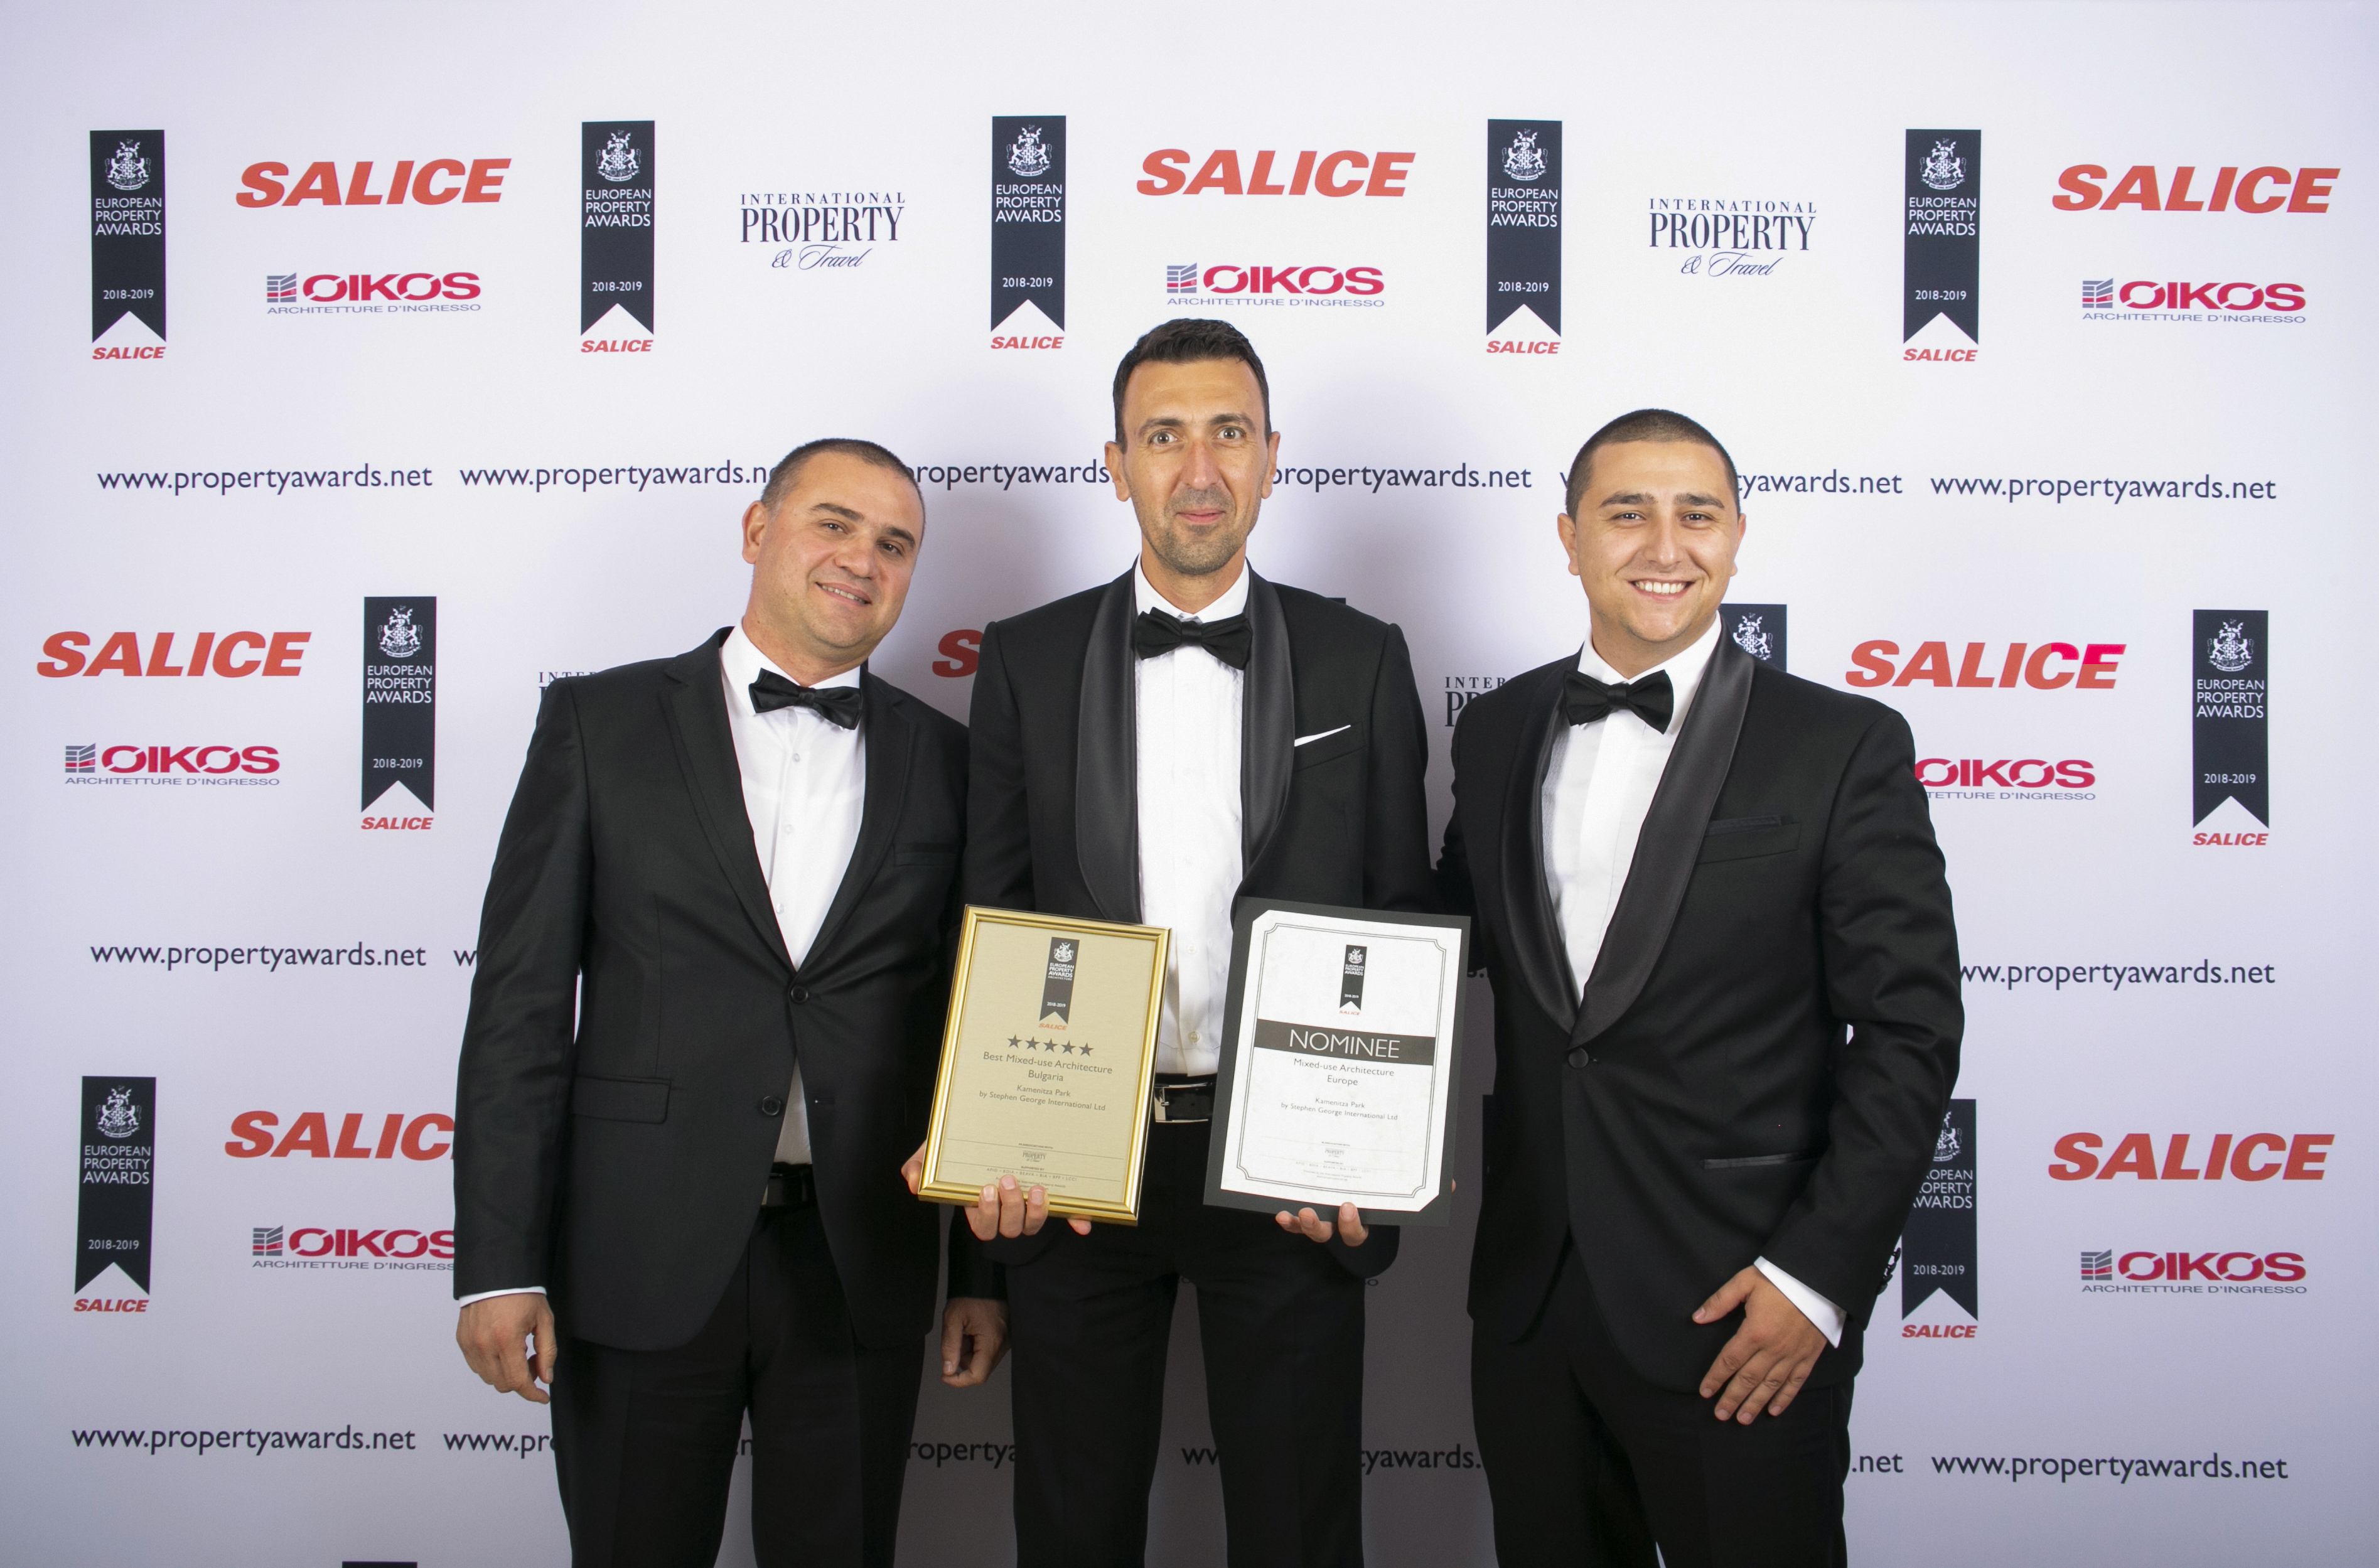 SGI with two awards at the prestigious International Property Awards